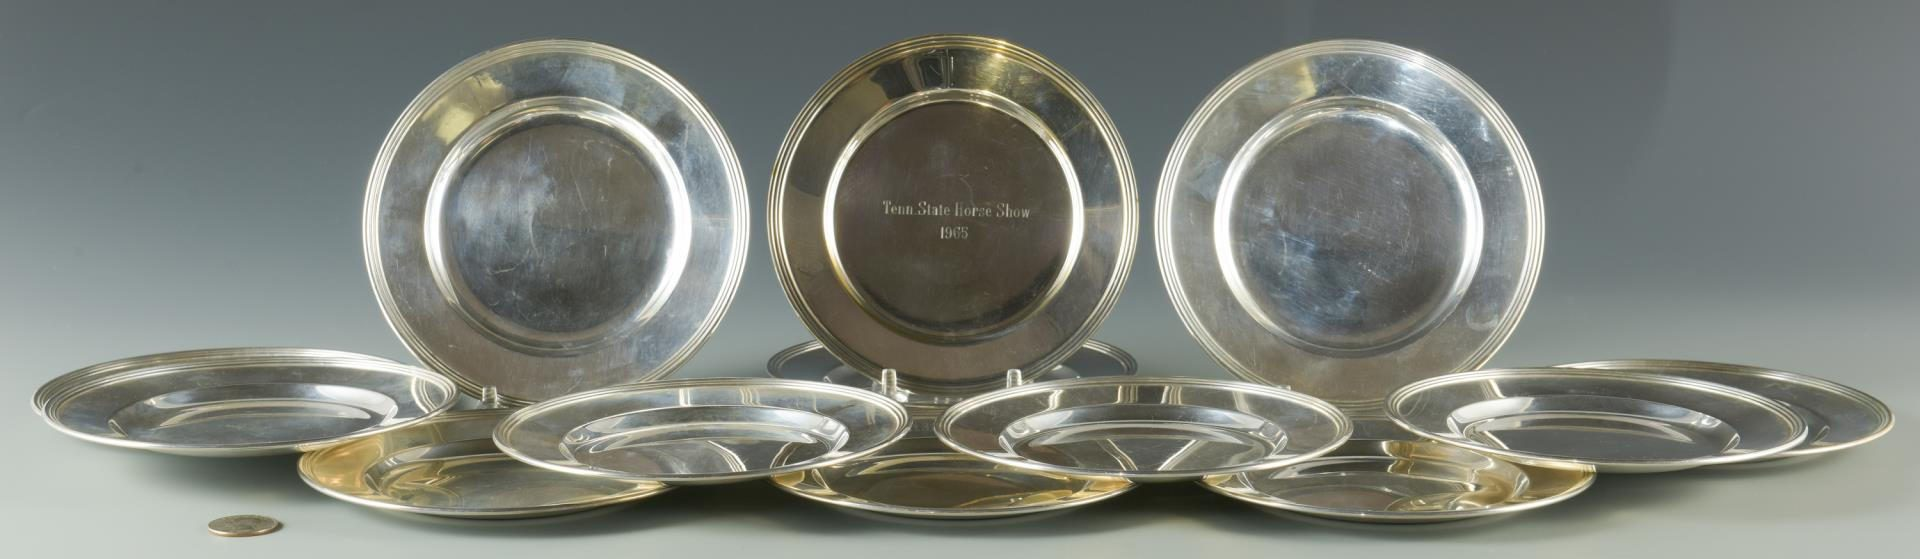 Lot 2: 12 Sterling Bread Plates plus 1 trophy plate